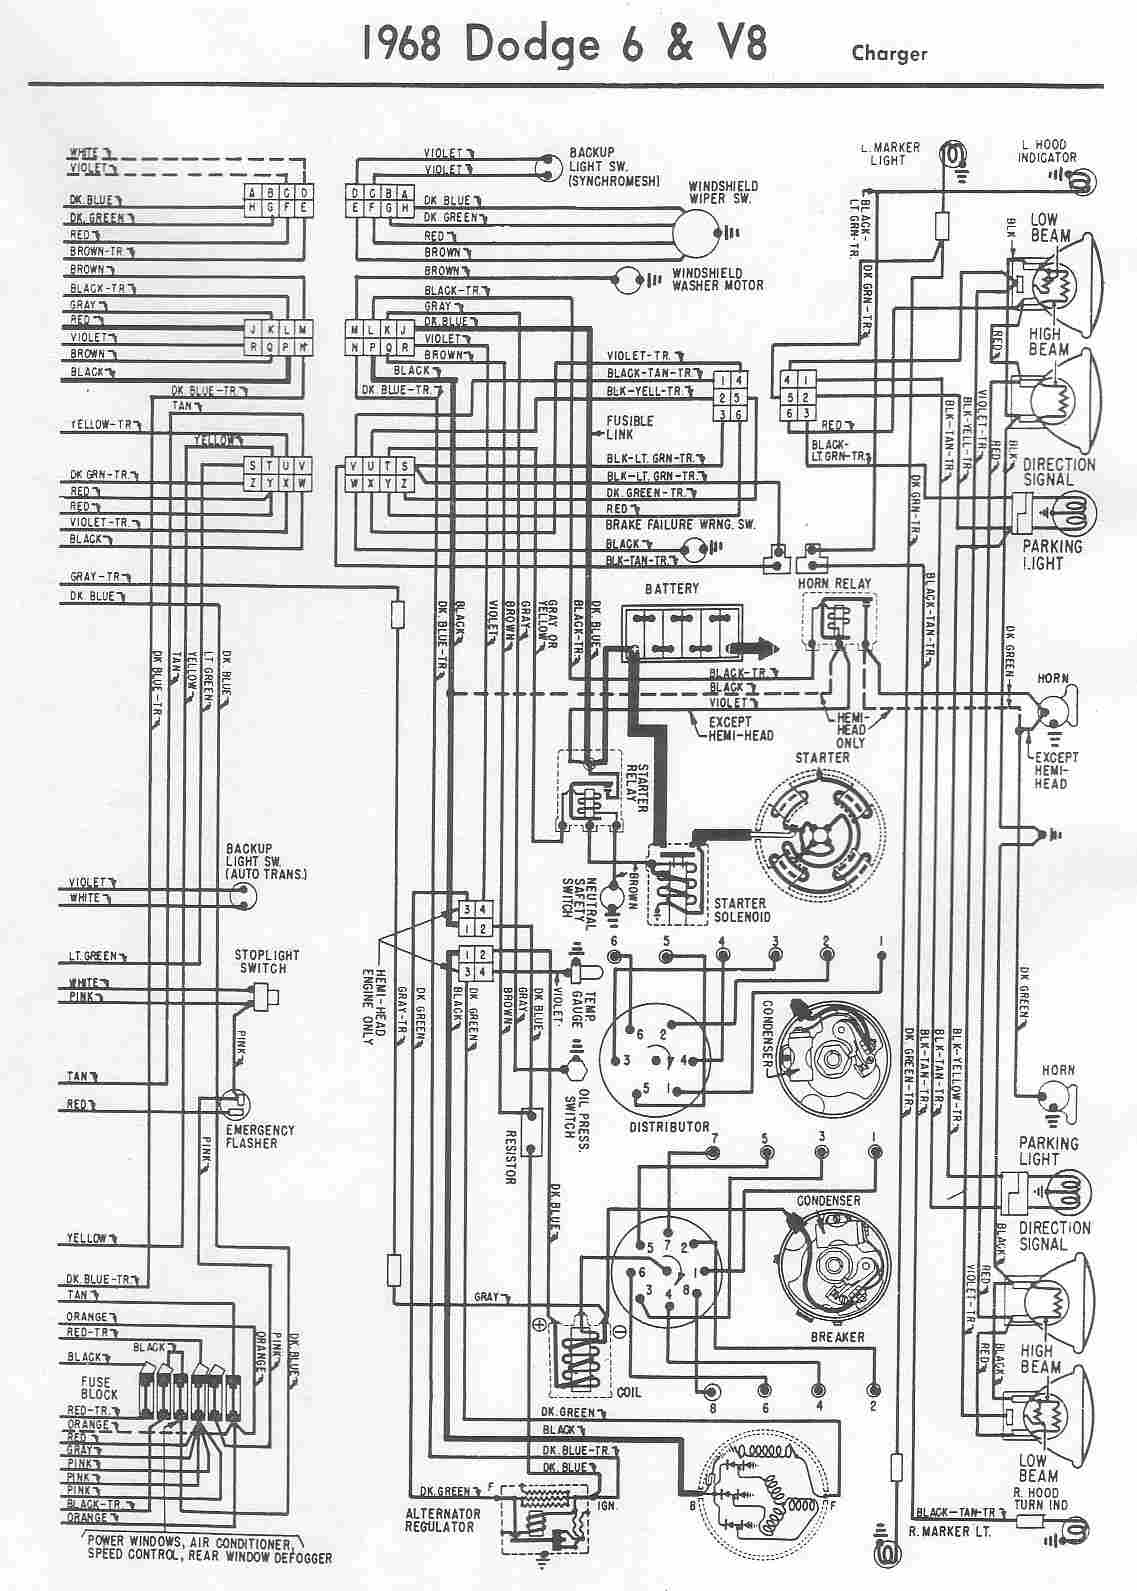 2009 dodge charger ignition wiring best site wiring harness 2012 dodge charger wiring diagram 2009 dodge [ 1137 x 1591 Pixel ]